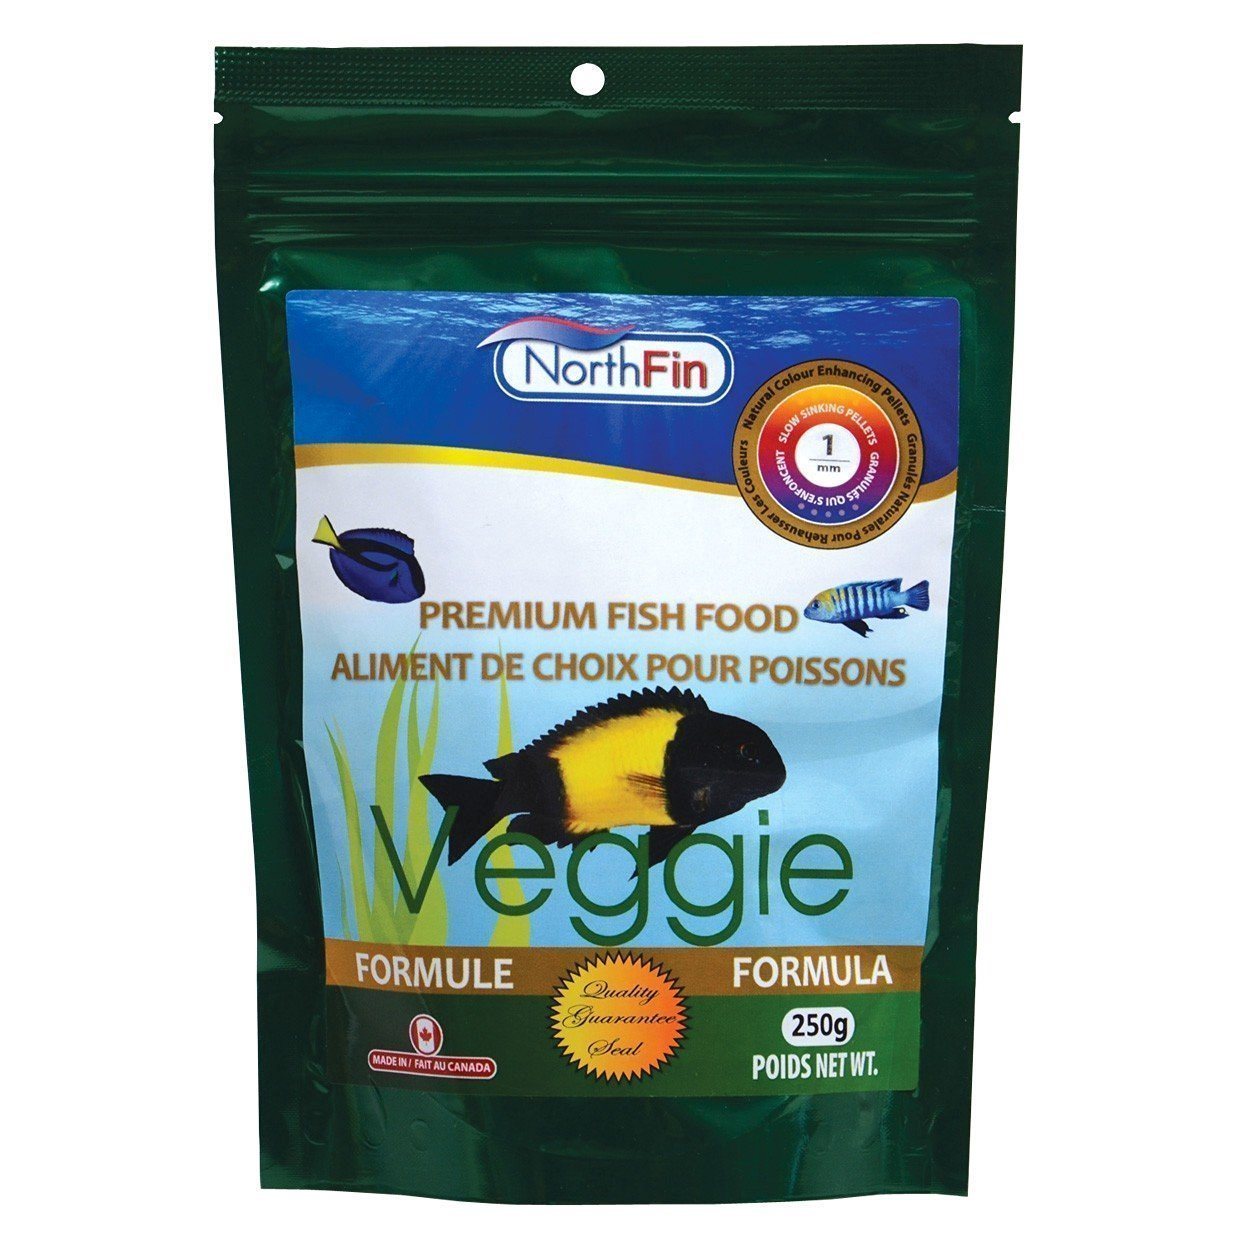 Food Veggie Formula 1mm Pellet 250 Gram Package, Formula Consist on being Filler Free, Bi-product Free and Artificial Pigment Free with no added Hormones By Northfin